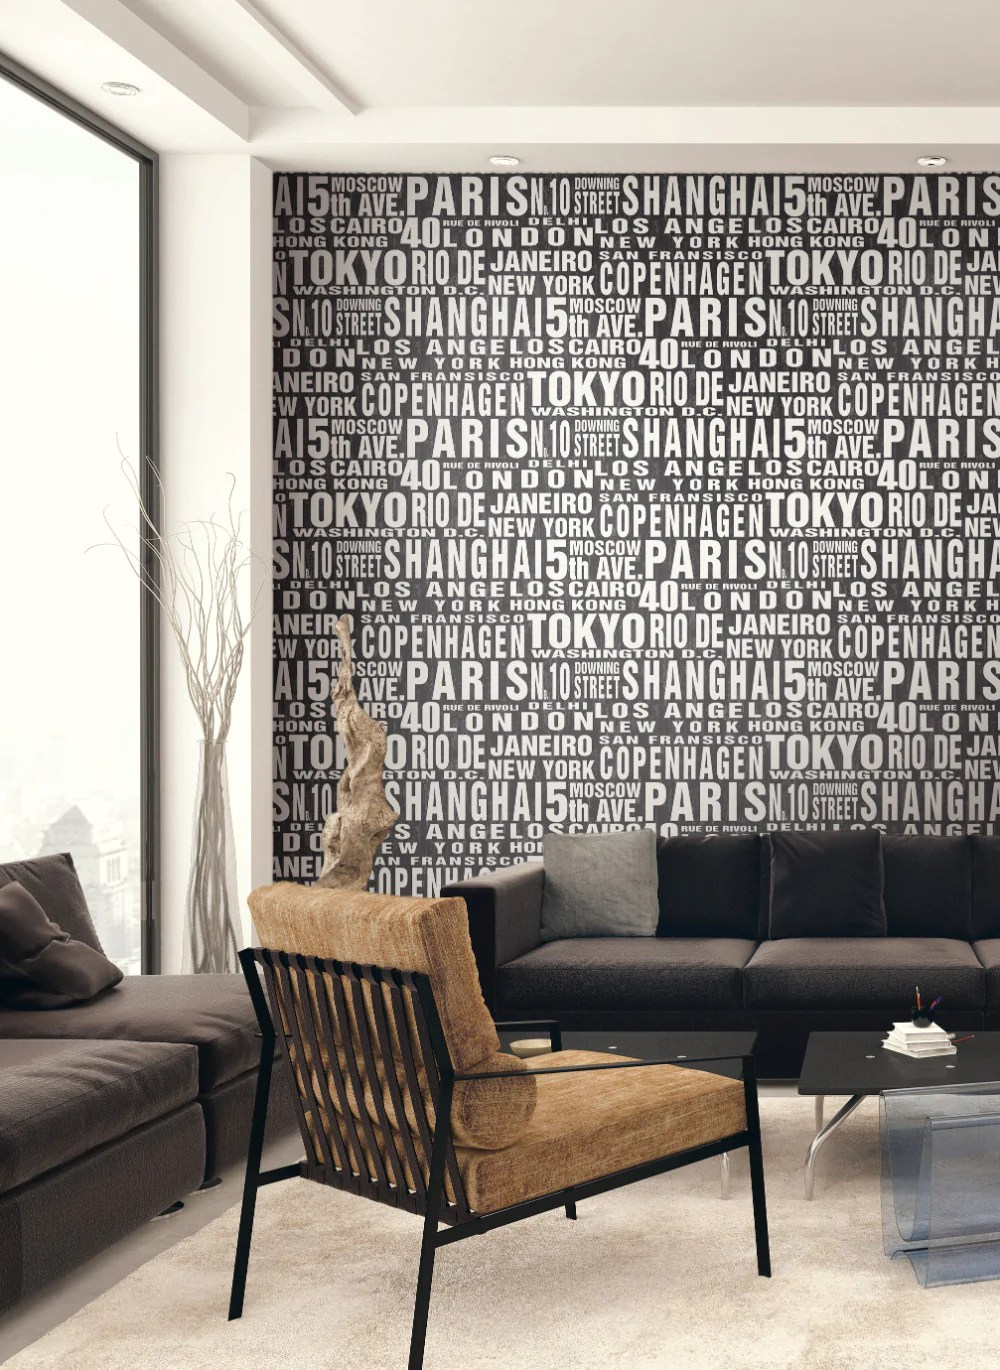 Around The World Peel-and-Stick Wallpaper in Black and White by NextWa – BURKE DECOR